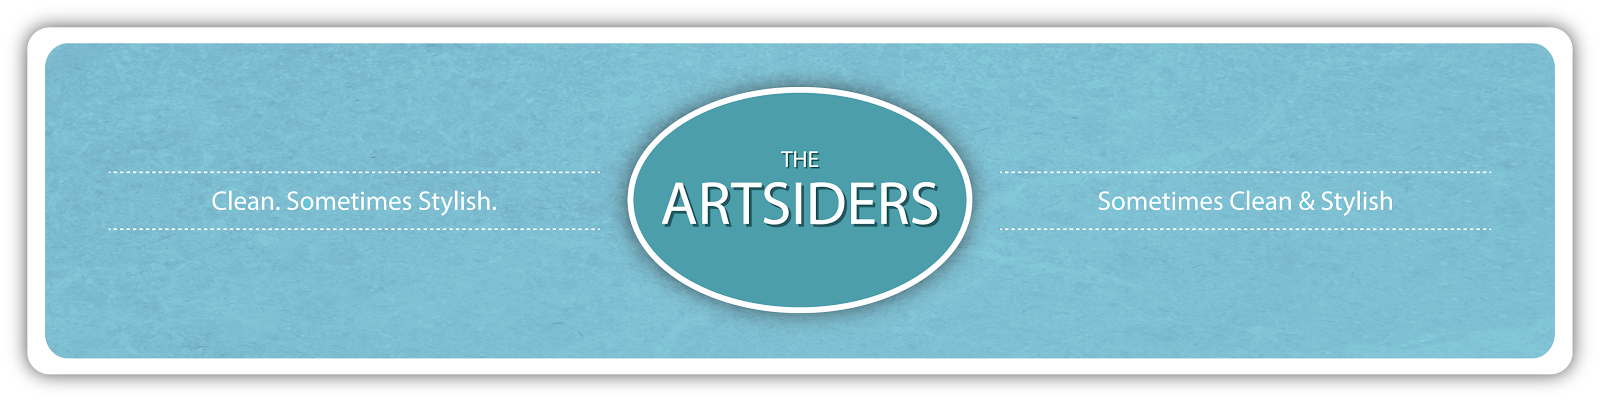 The Artsiders